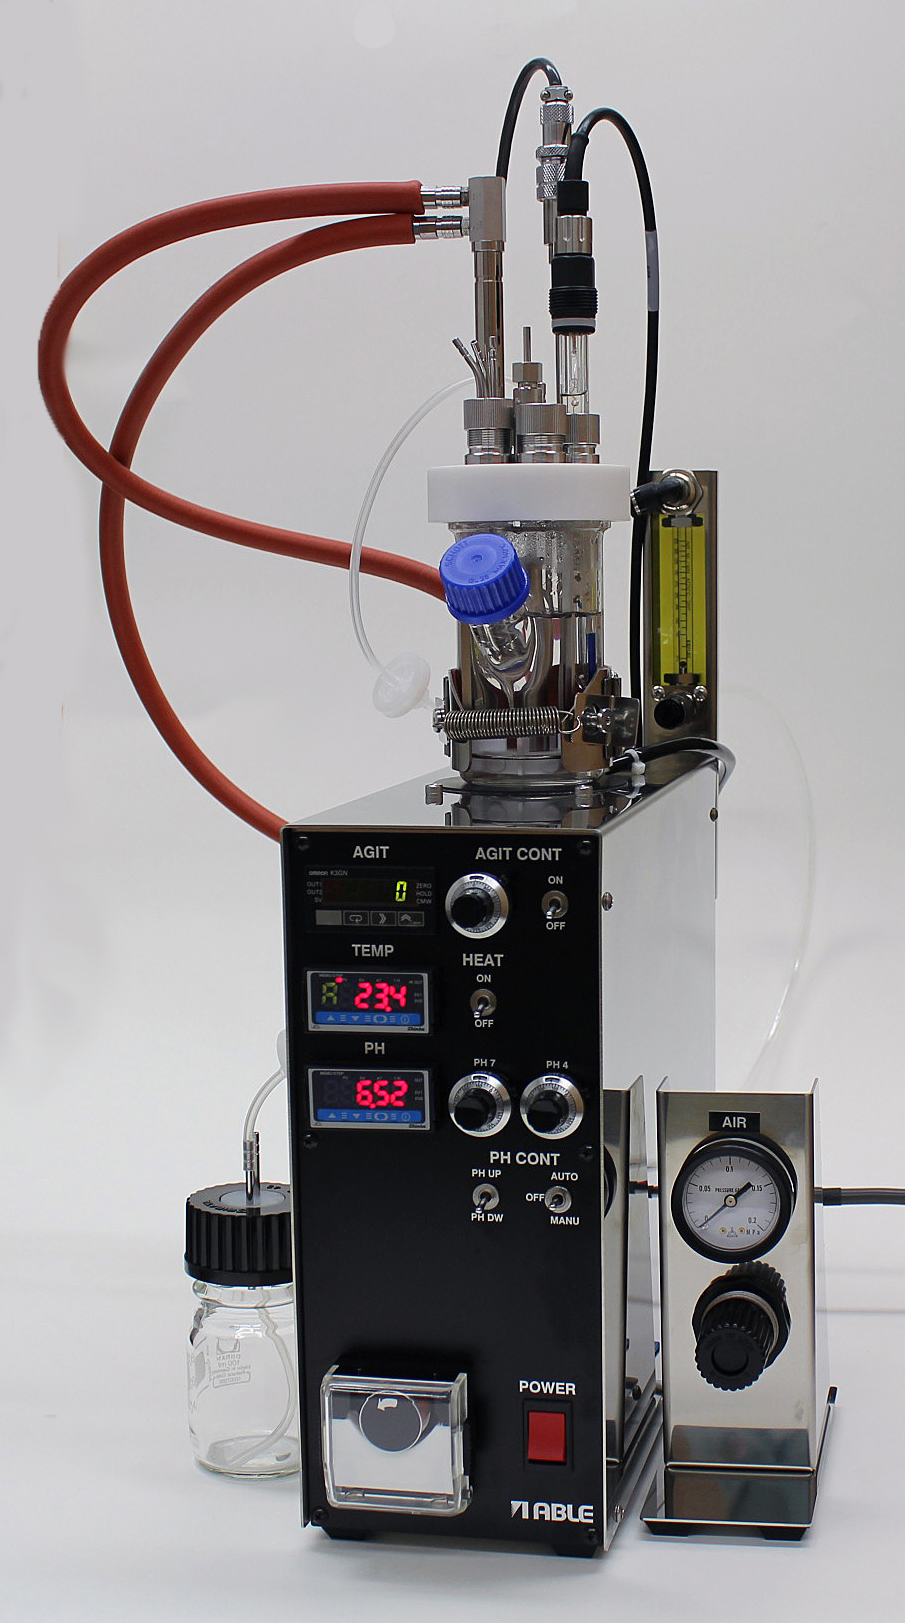 Enzyme catalysis device BME